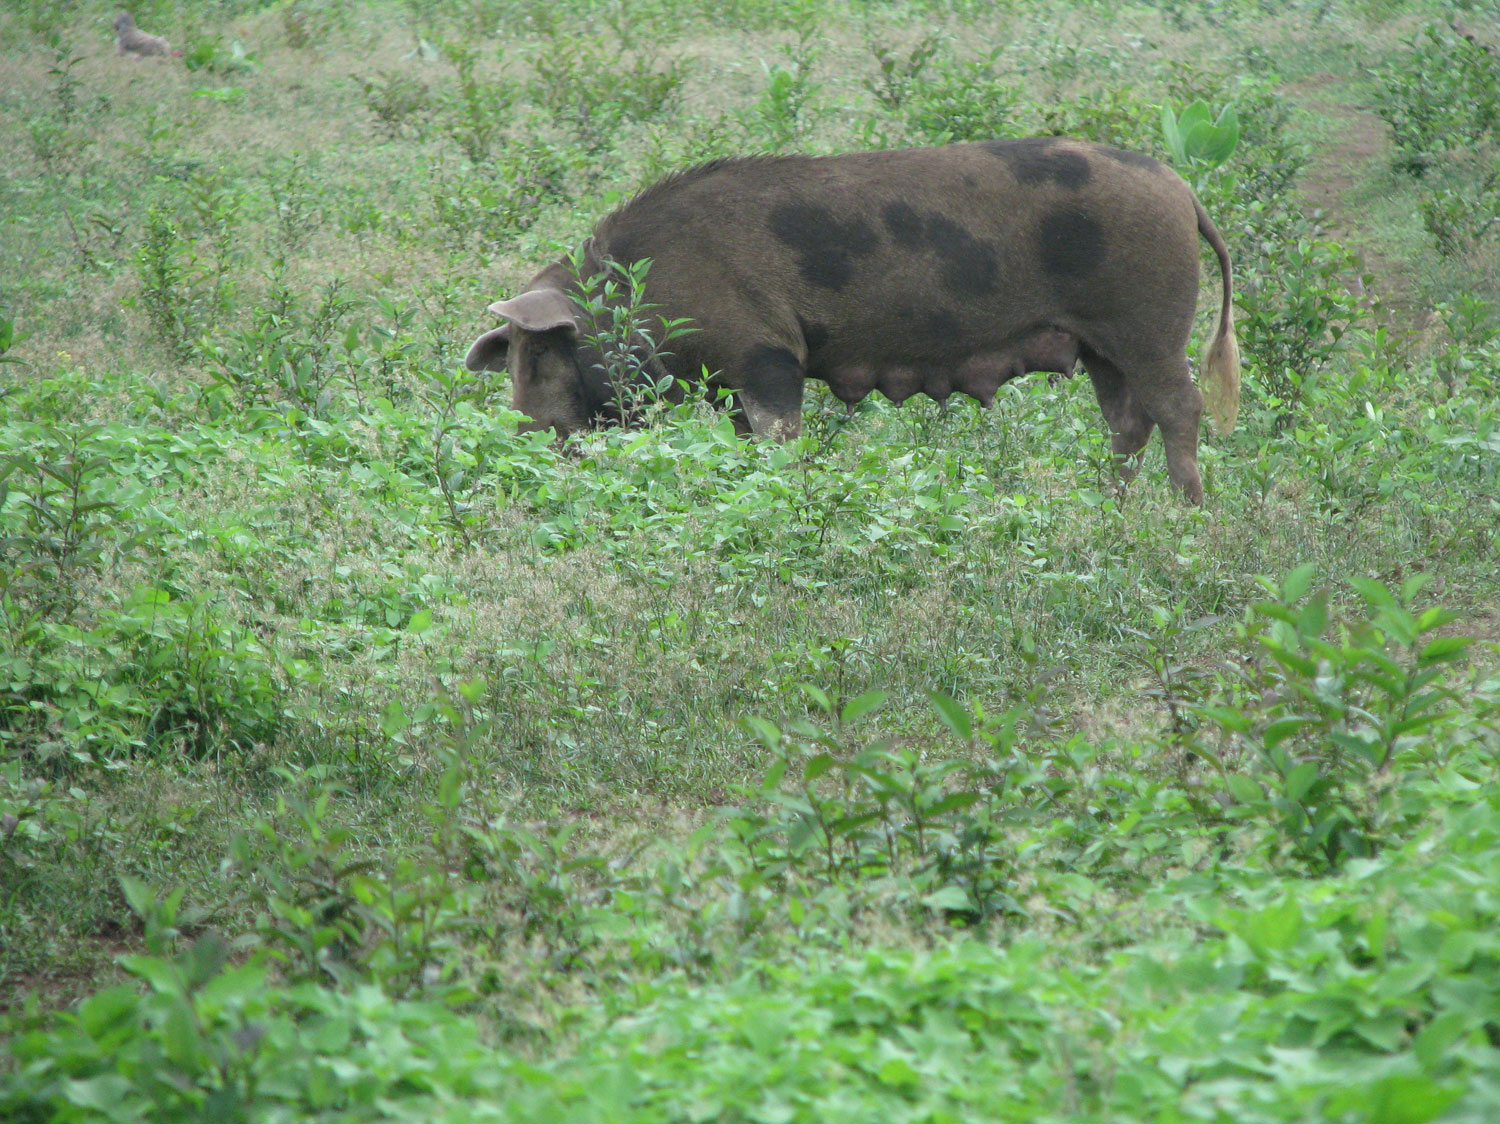 A giant pig in the community of Nuevo a Manecer